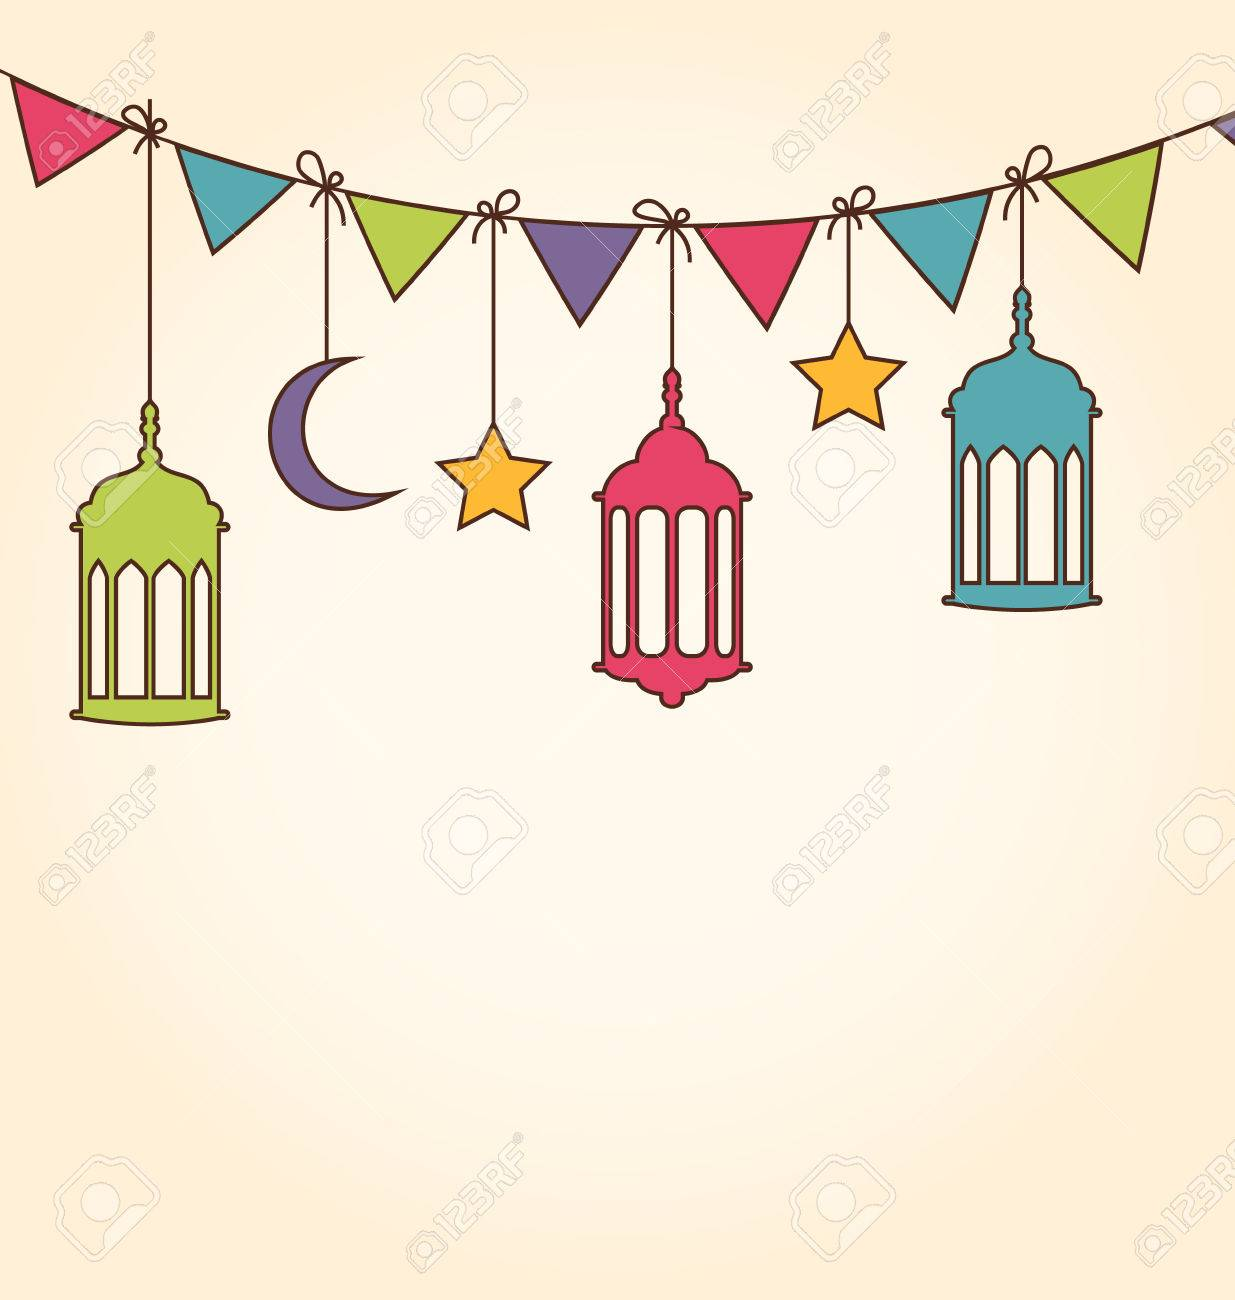 Illustration Background for Ramadan Kareem with Colorful Hanging...